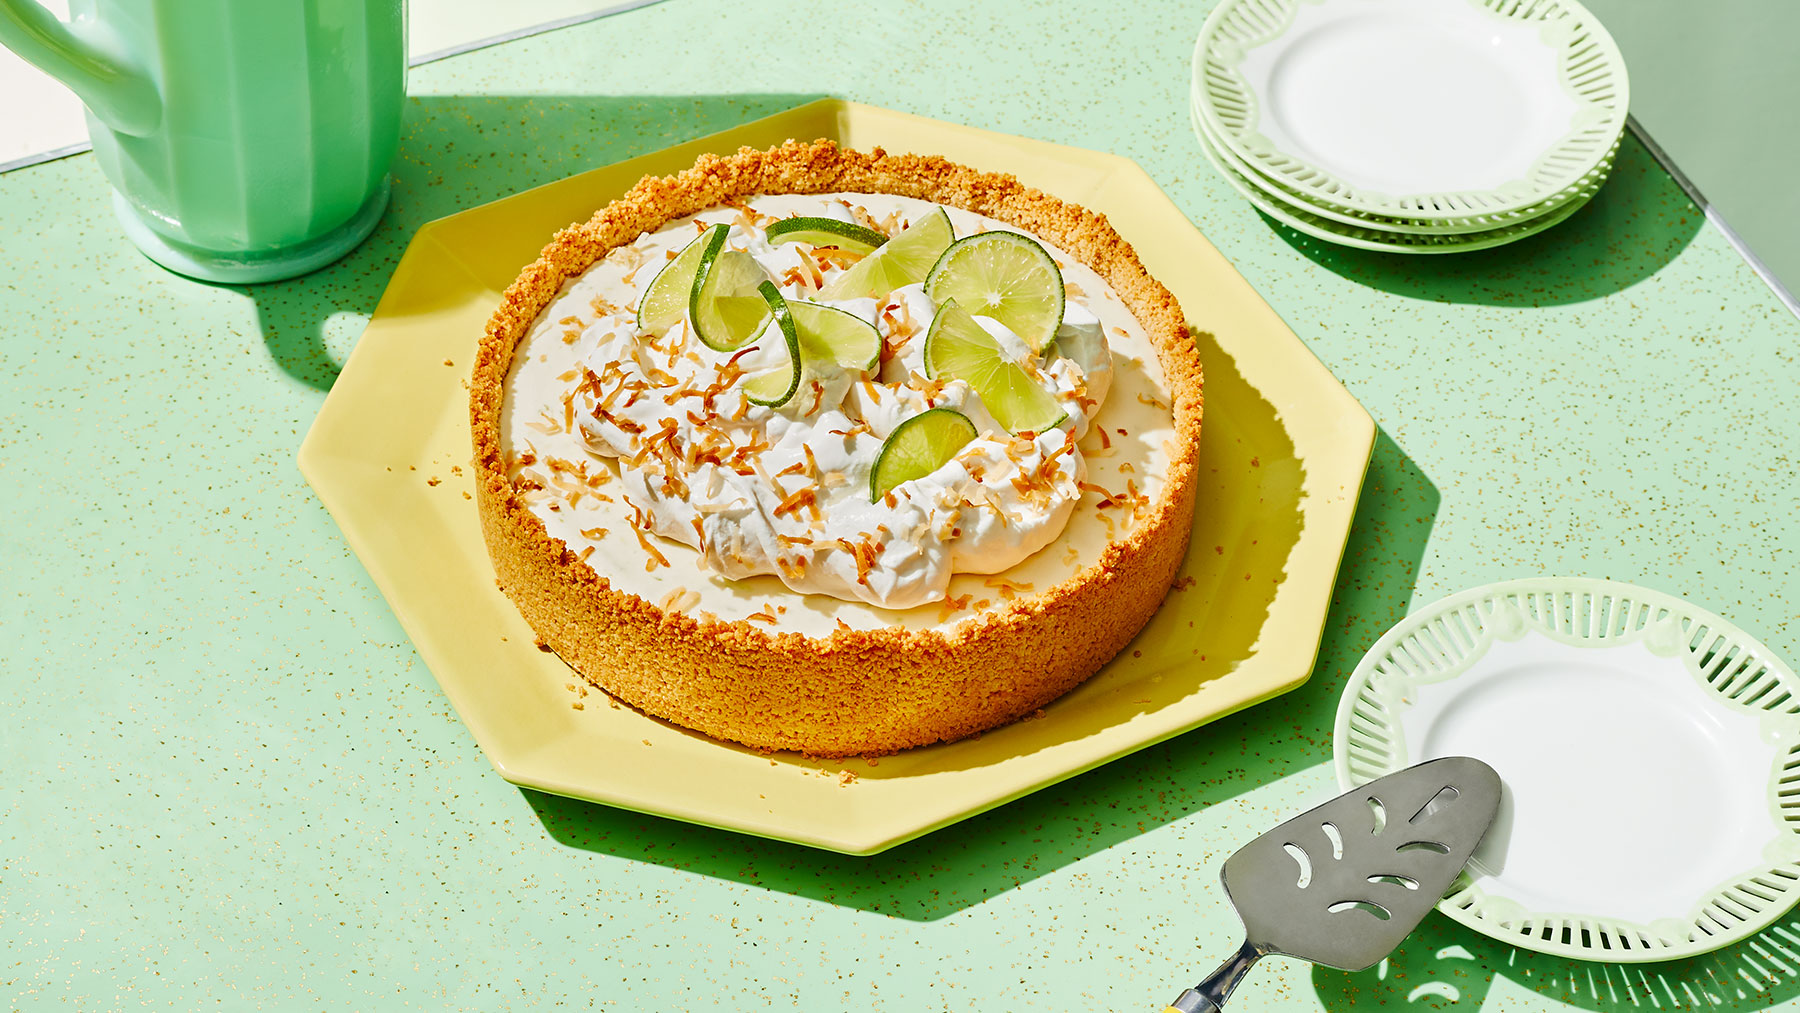 Toasted-Coconut Key Lime Pie